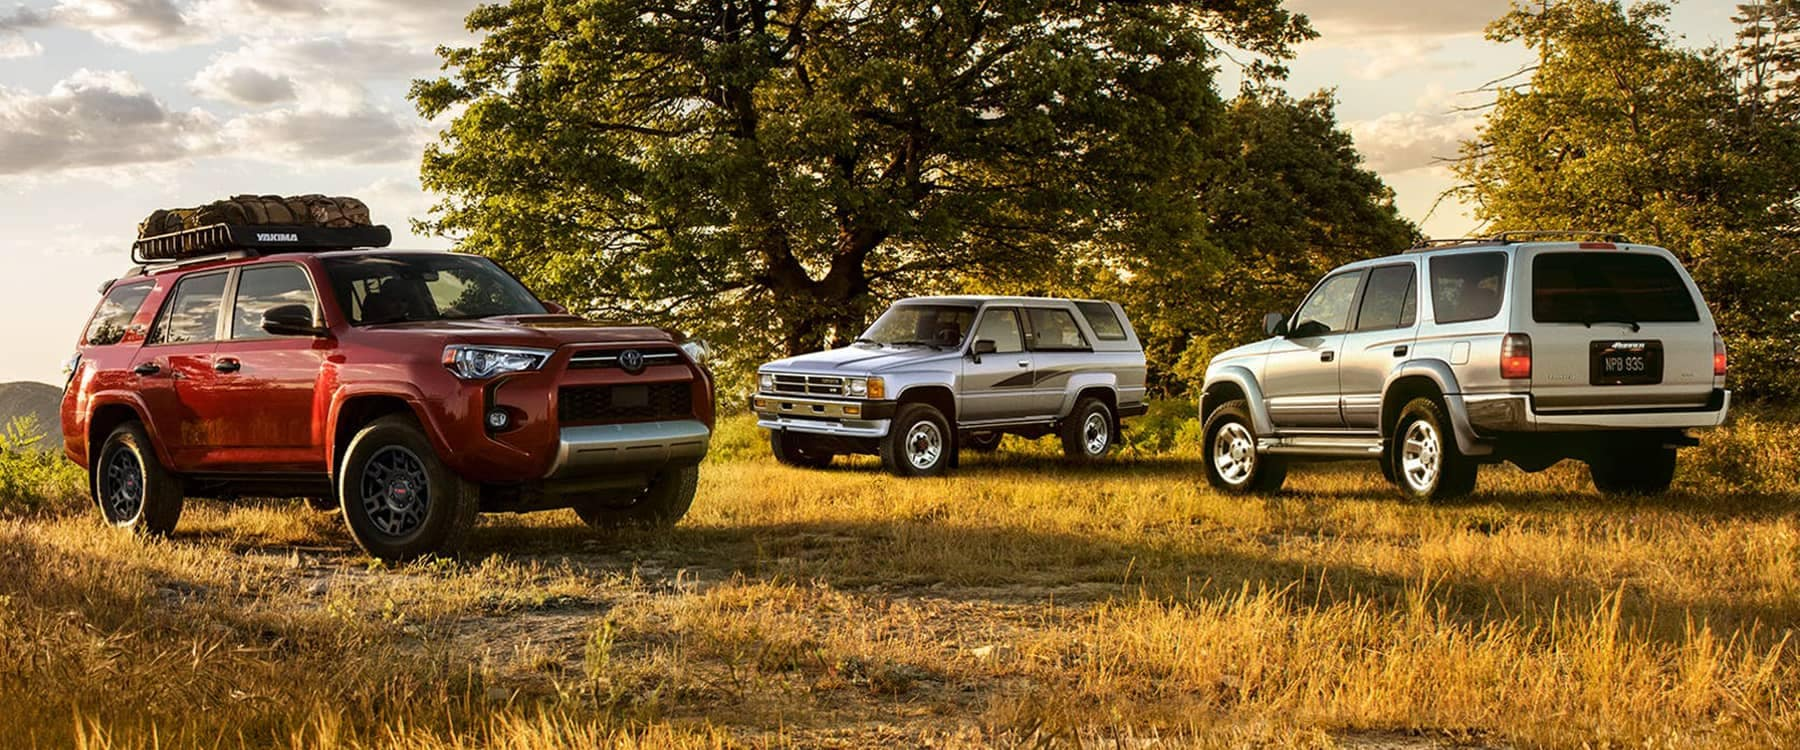 Three 2021 Toyota 4Runners parked in grass next to trees